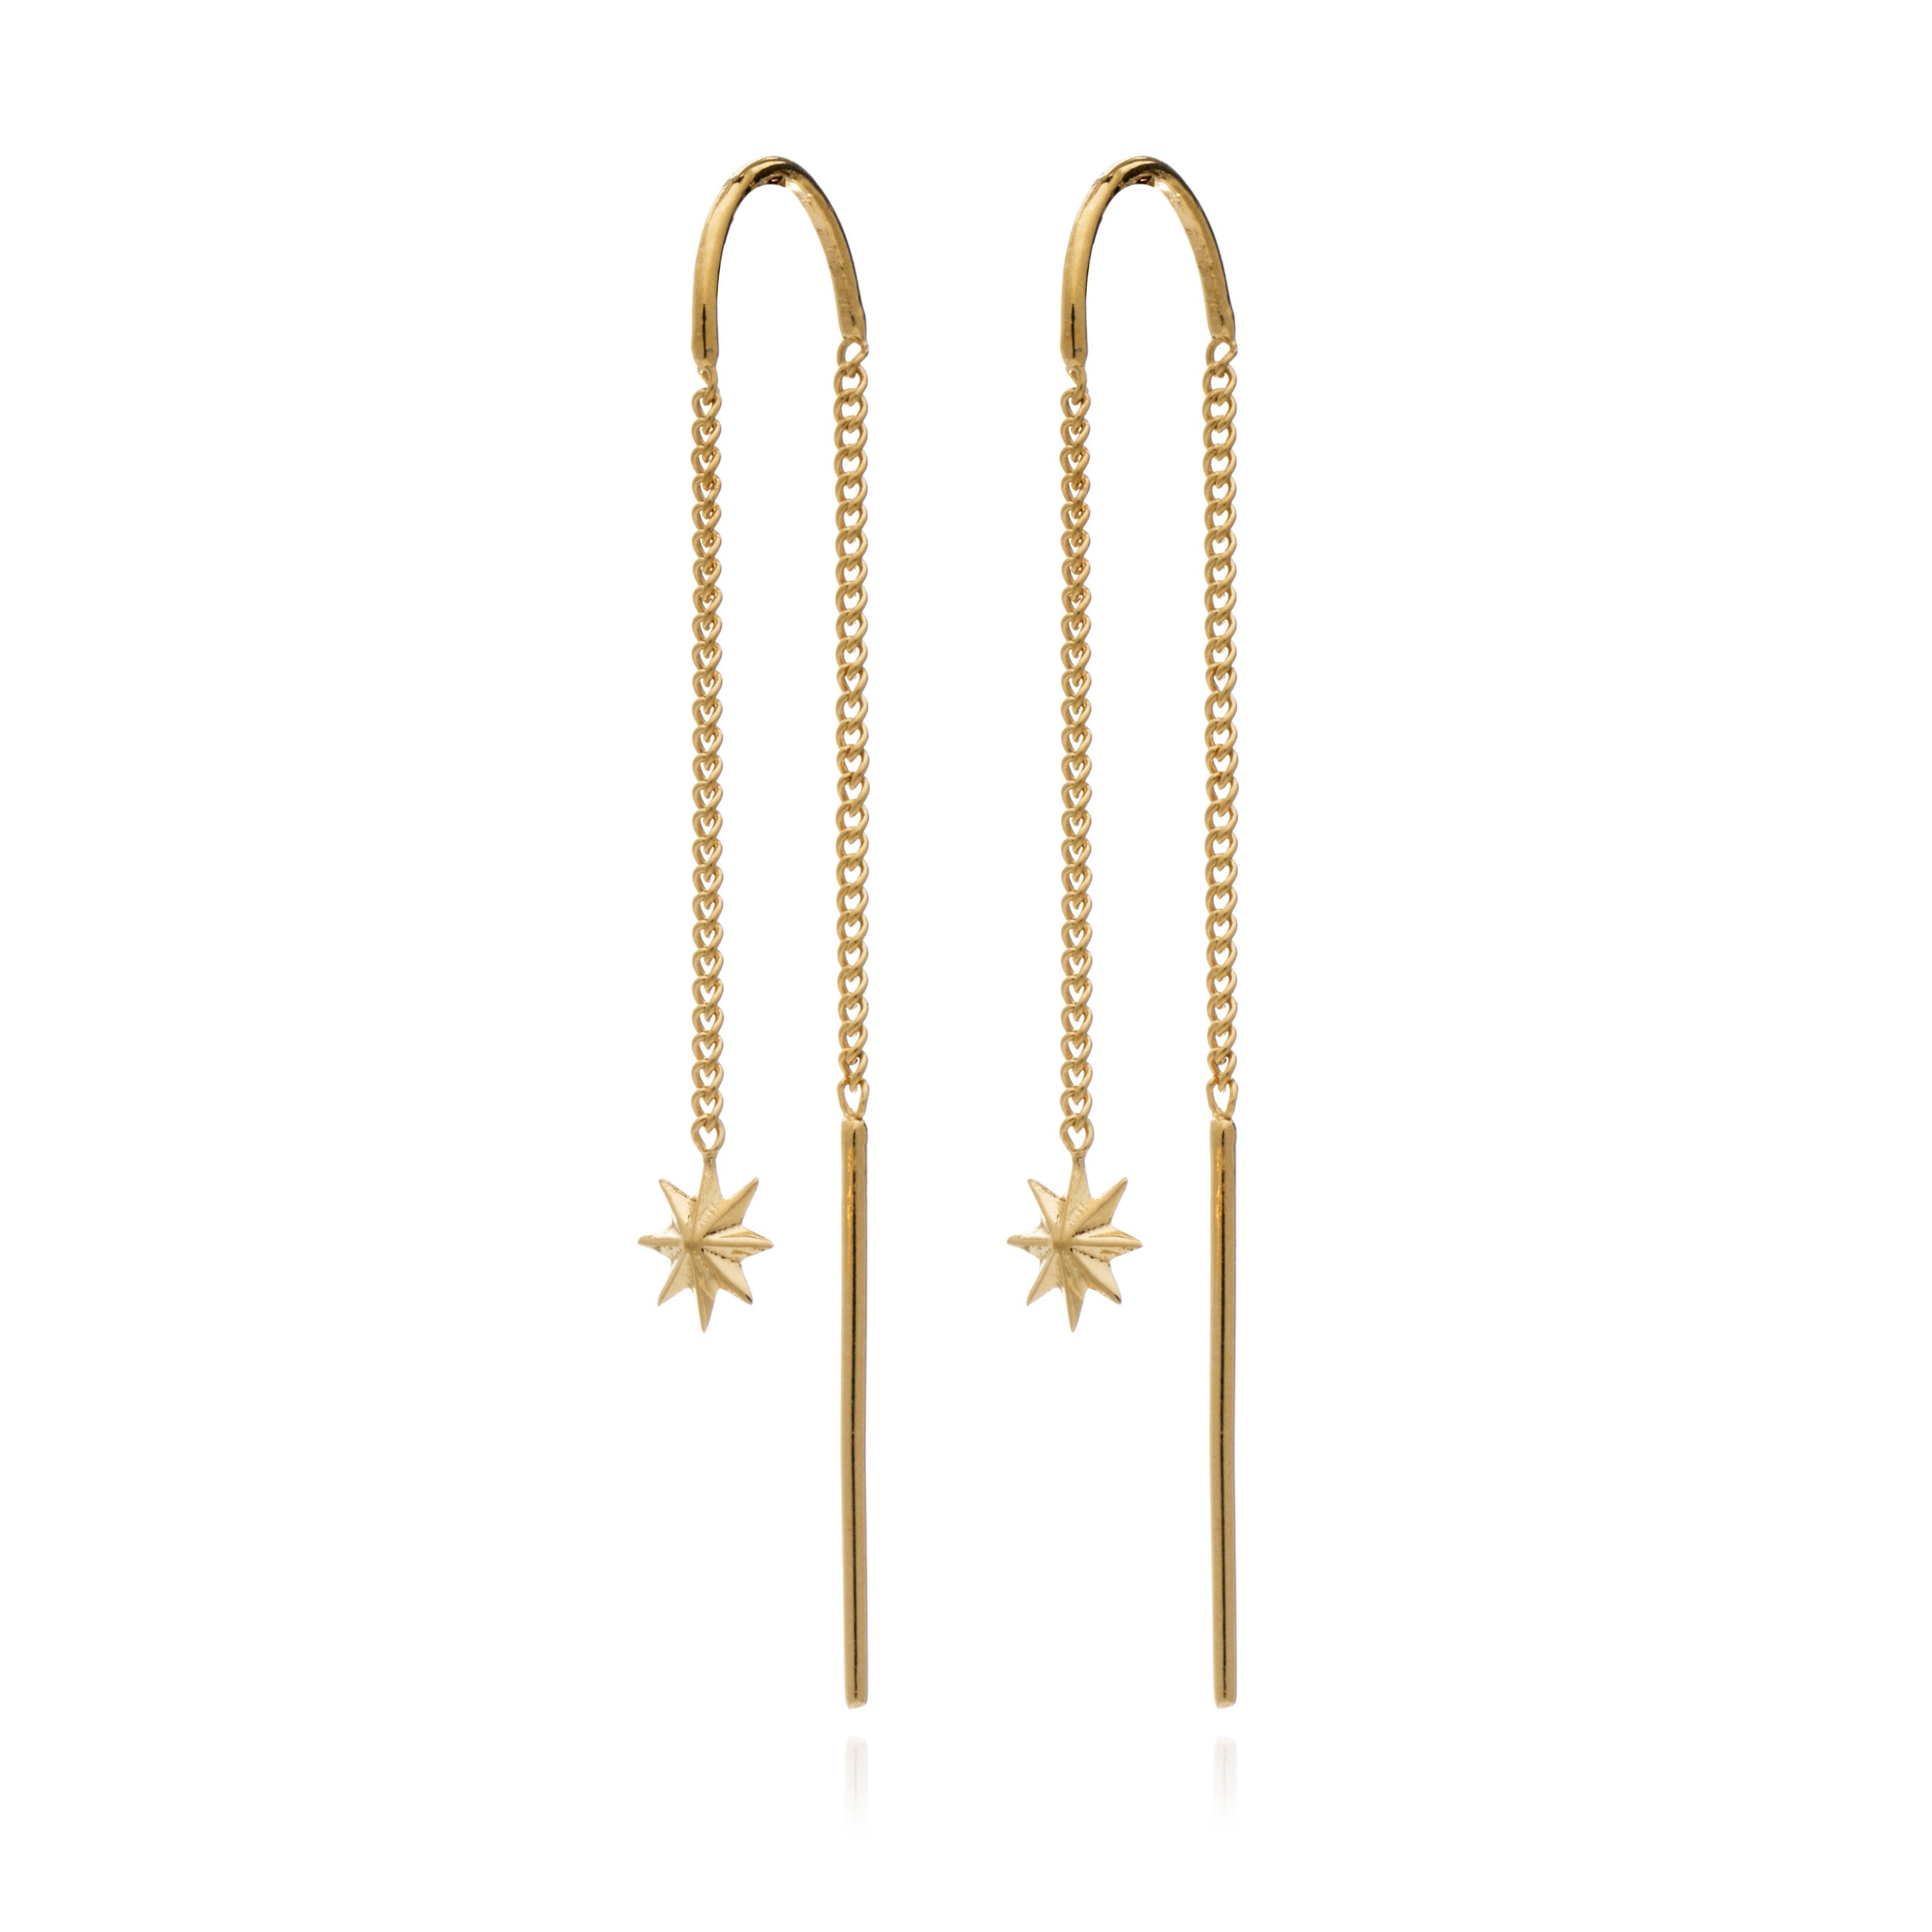 Silver Gold Plated Rockstar Threader Earrings